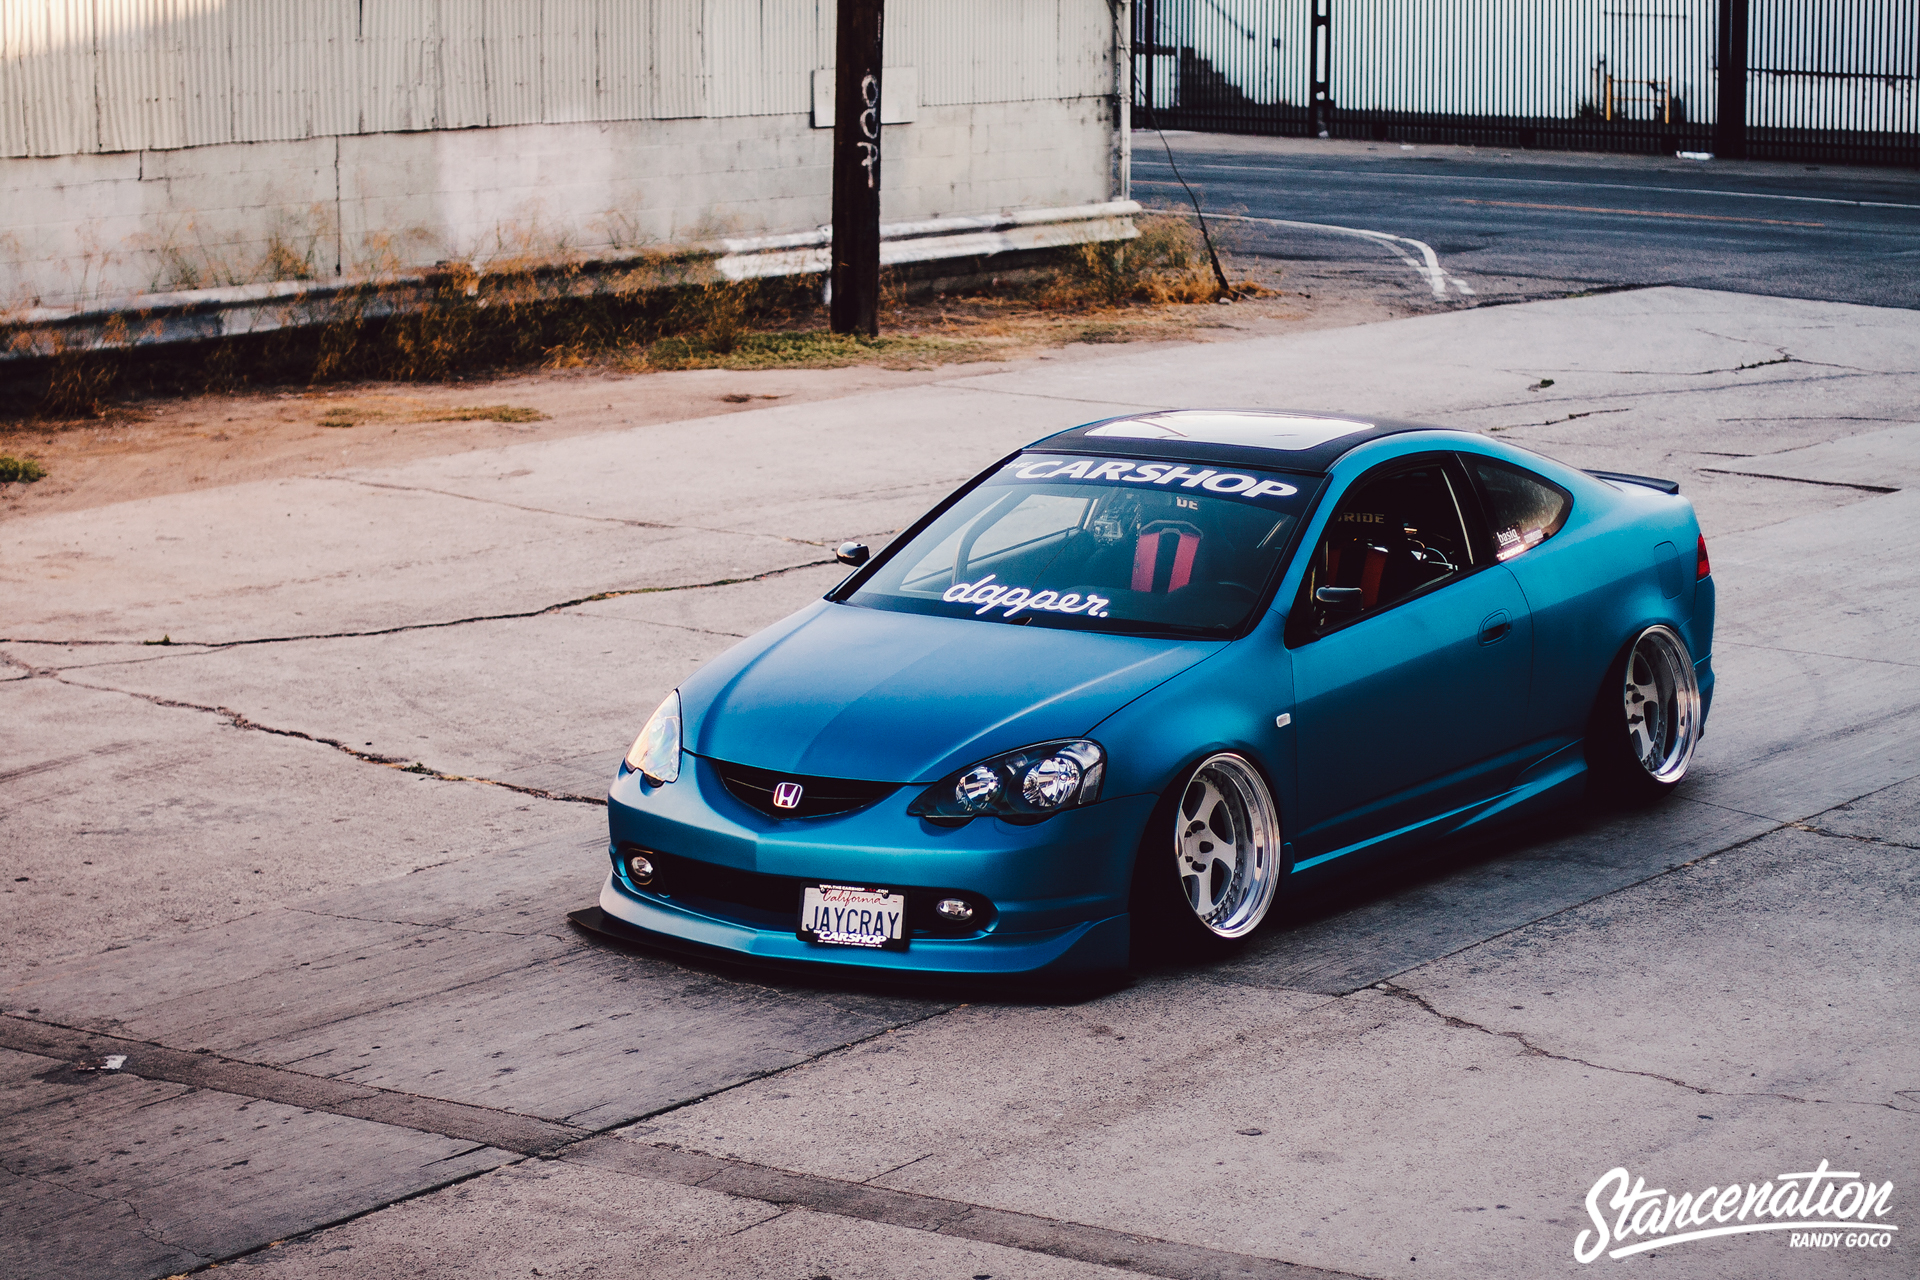 jaycray is the name jerald s acura rsx stancenation form